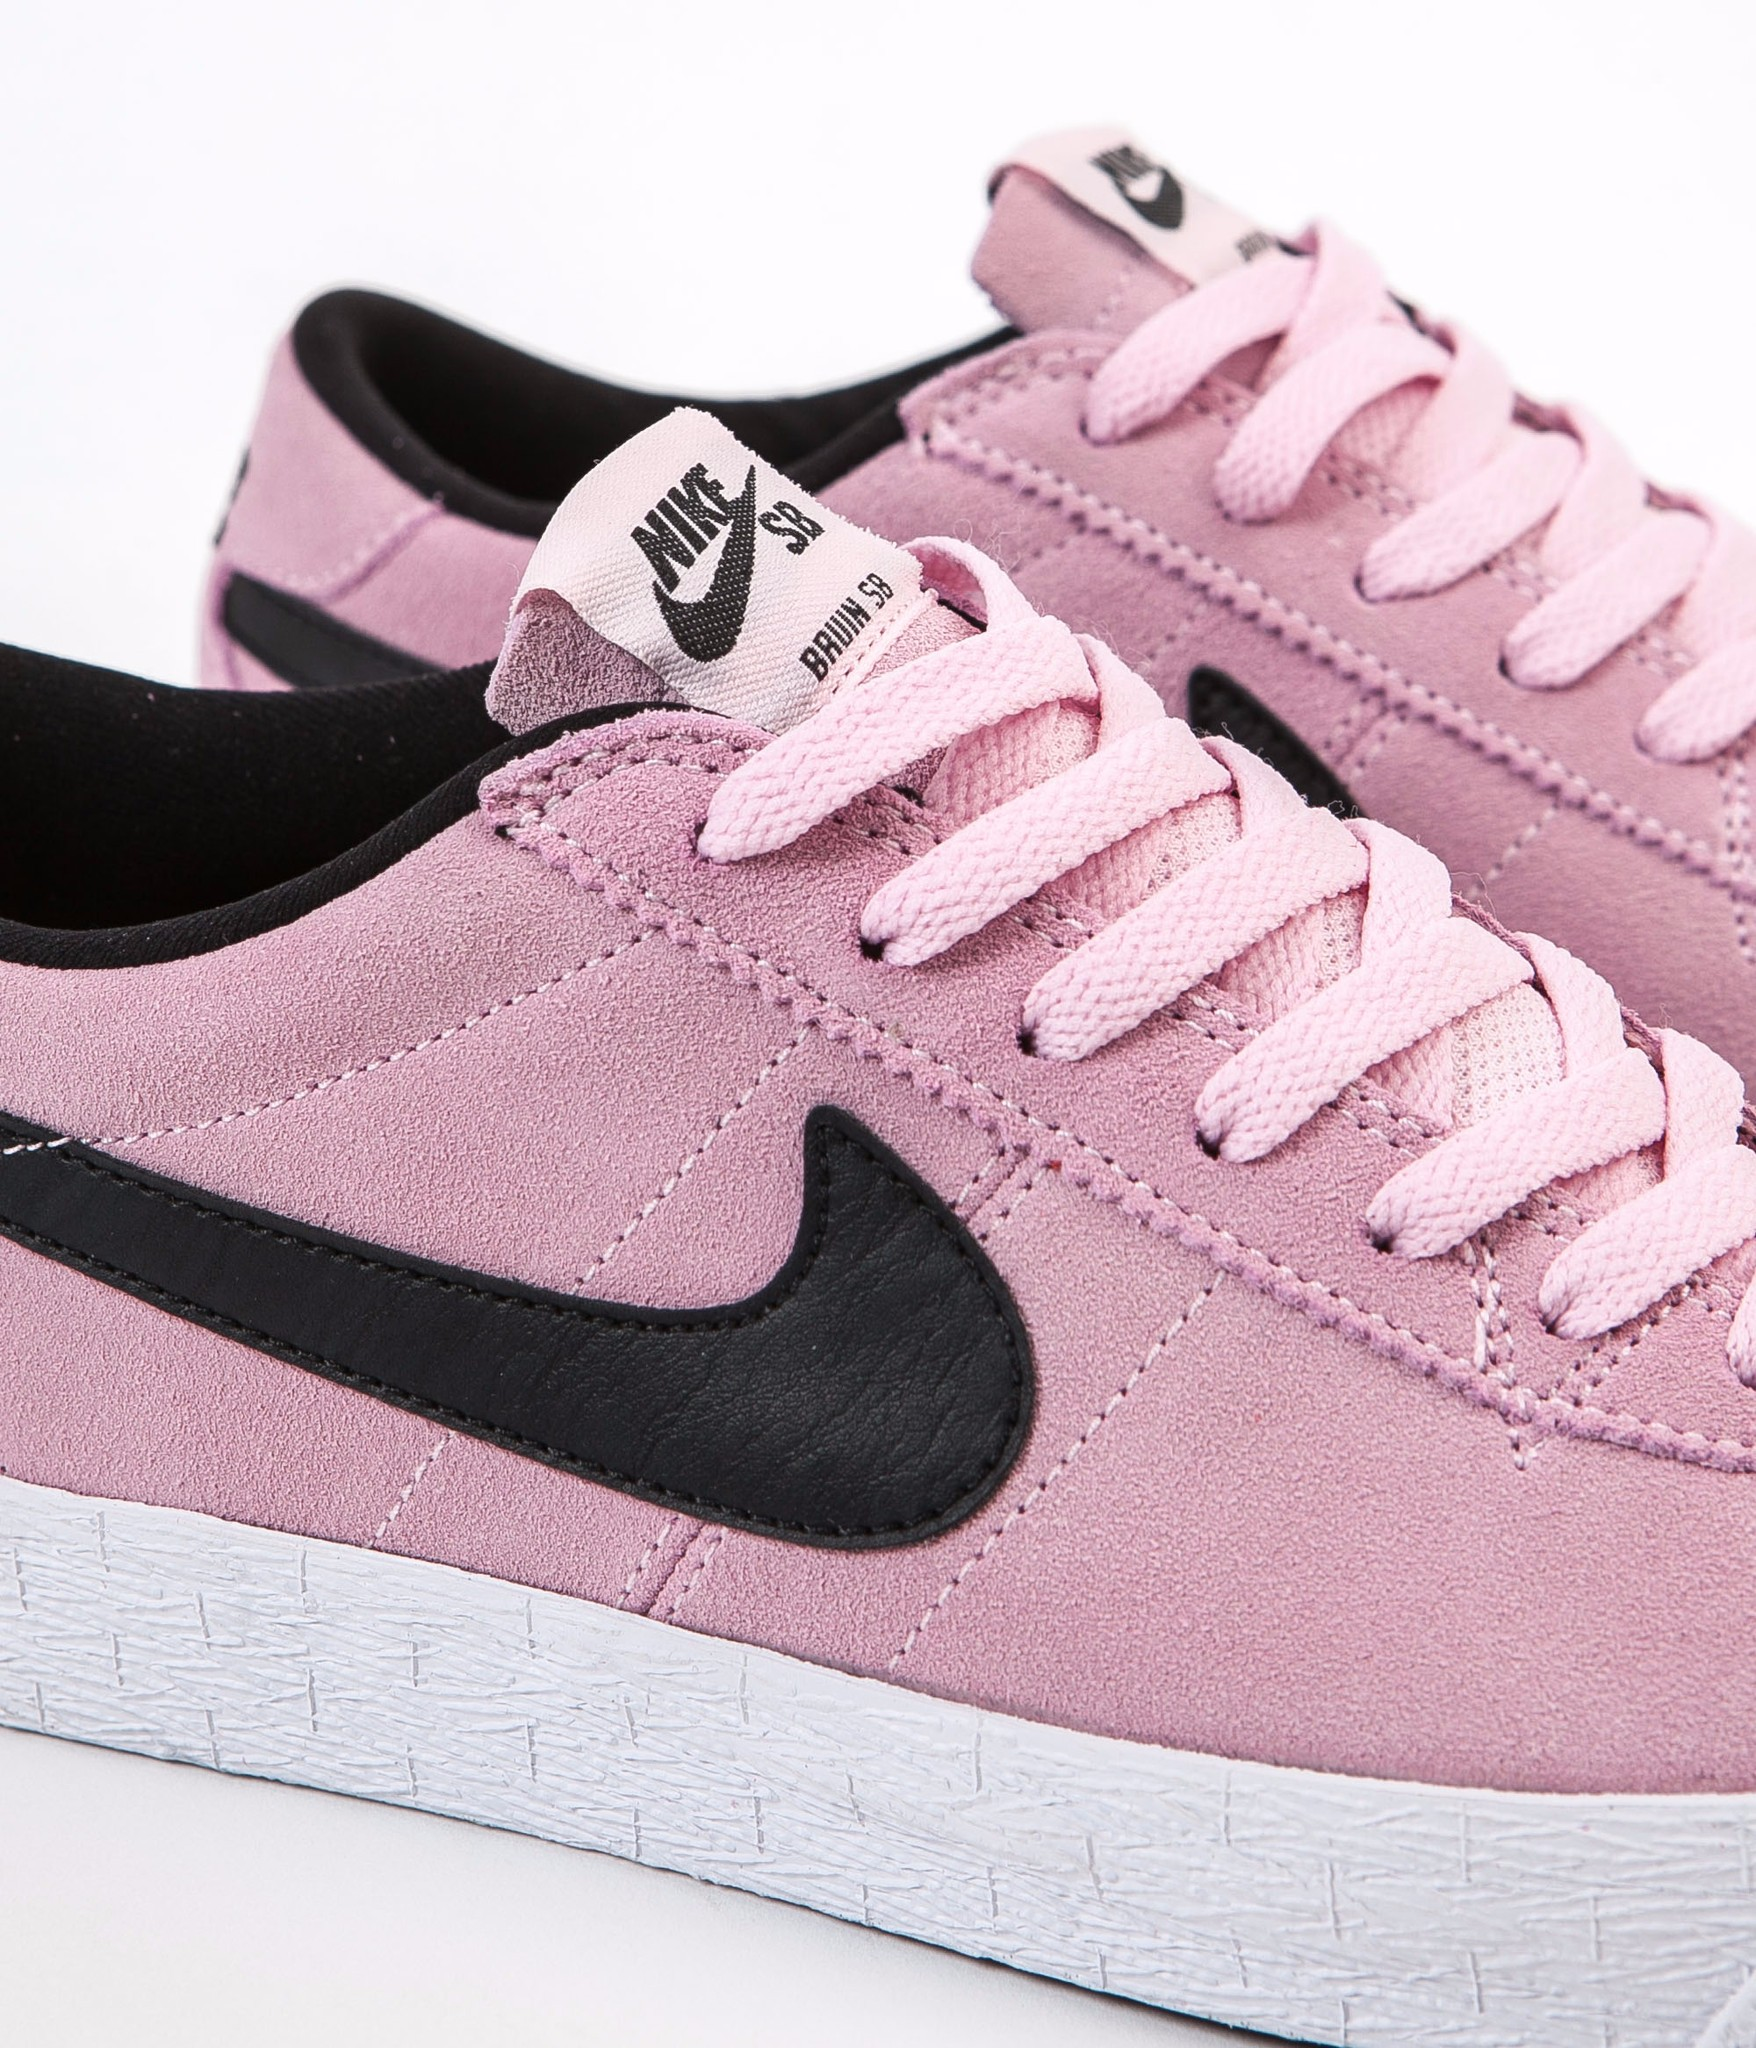 Nike SB Shoes Bruin Premium SE Prism Pink Black White USA SIZE Skateboard Sneakers FREE POST New